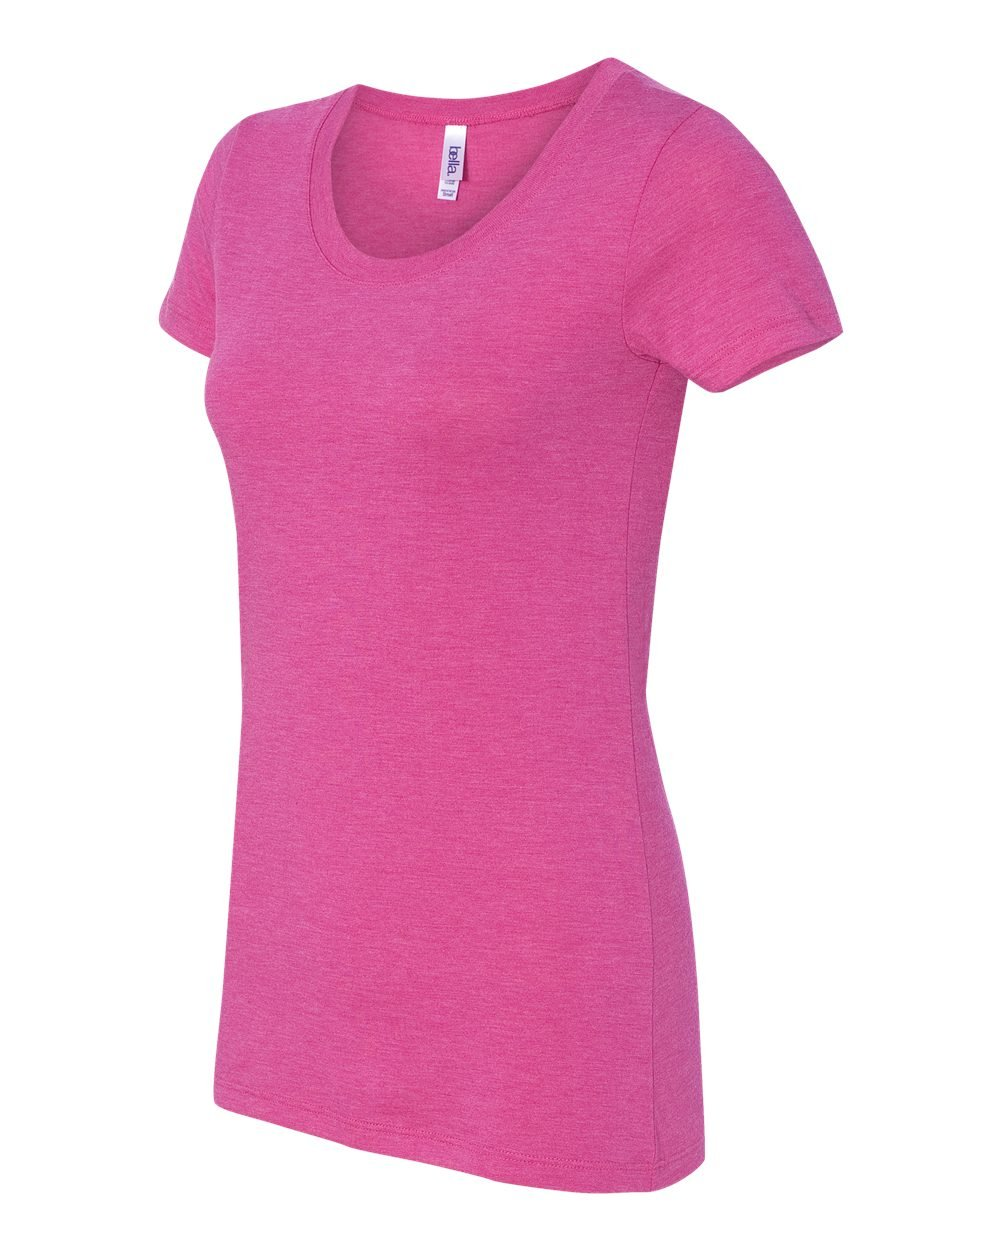 Bella and canvas ladies 39 triblend short sleeve t shirt for Bella shirts screen printing